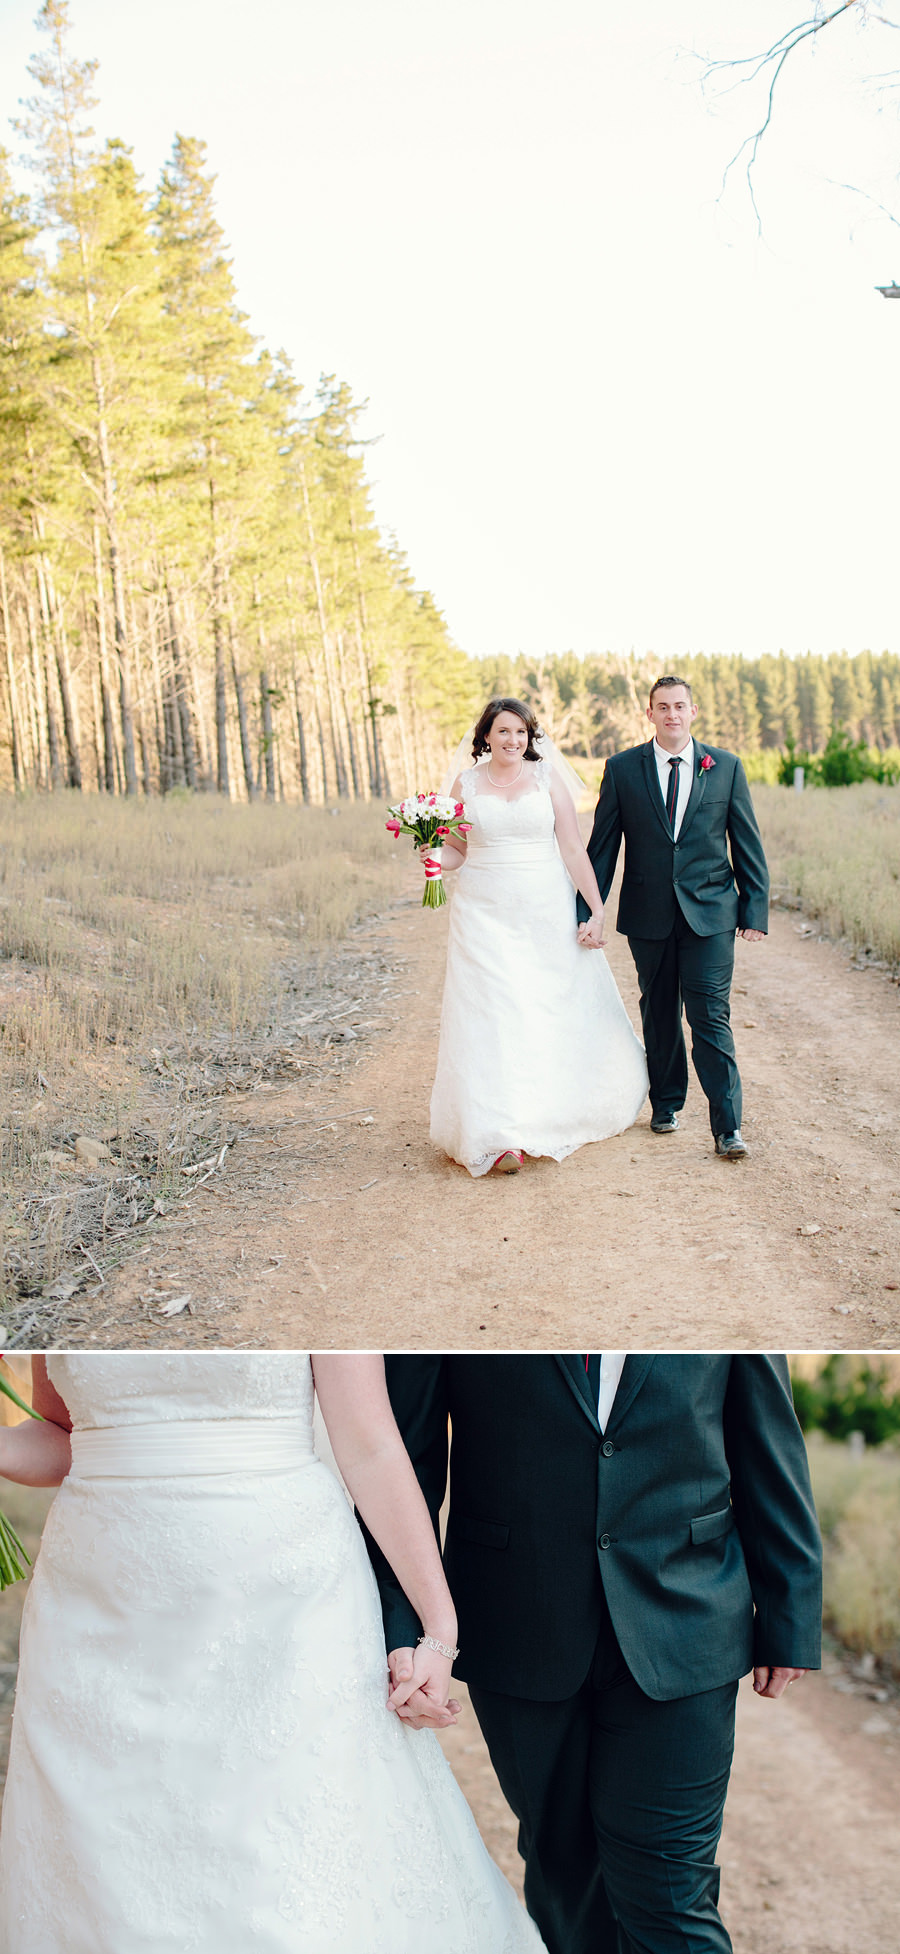 Kowen Pine Forest Wedding Photography: Bride & Groom